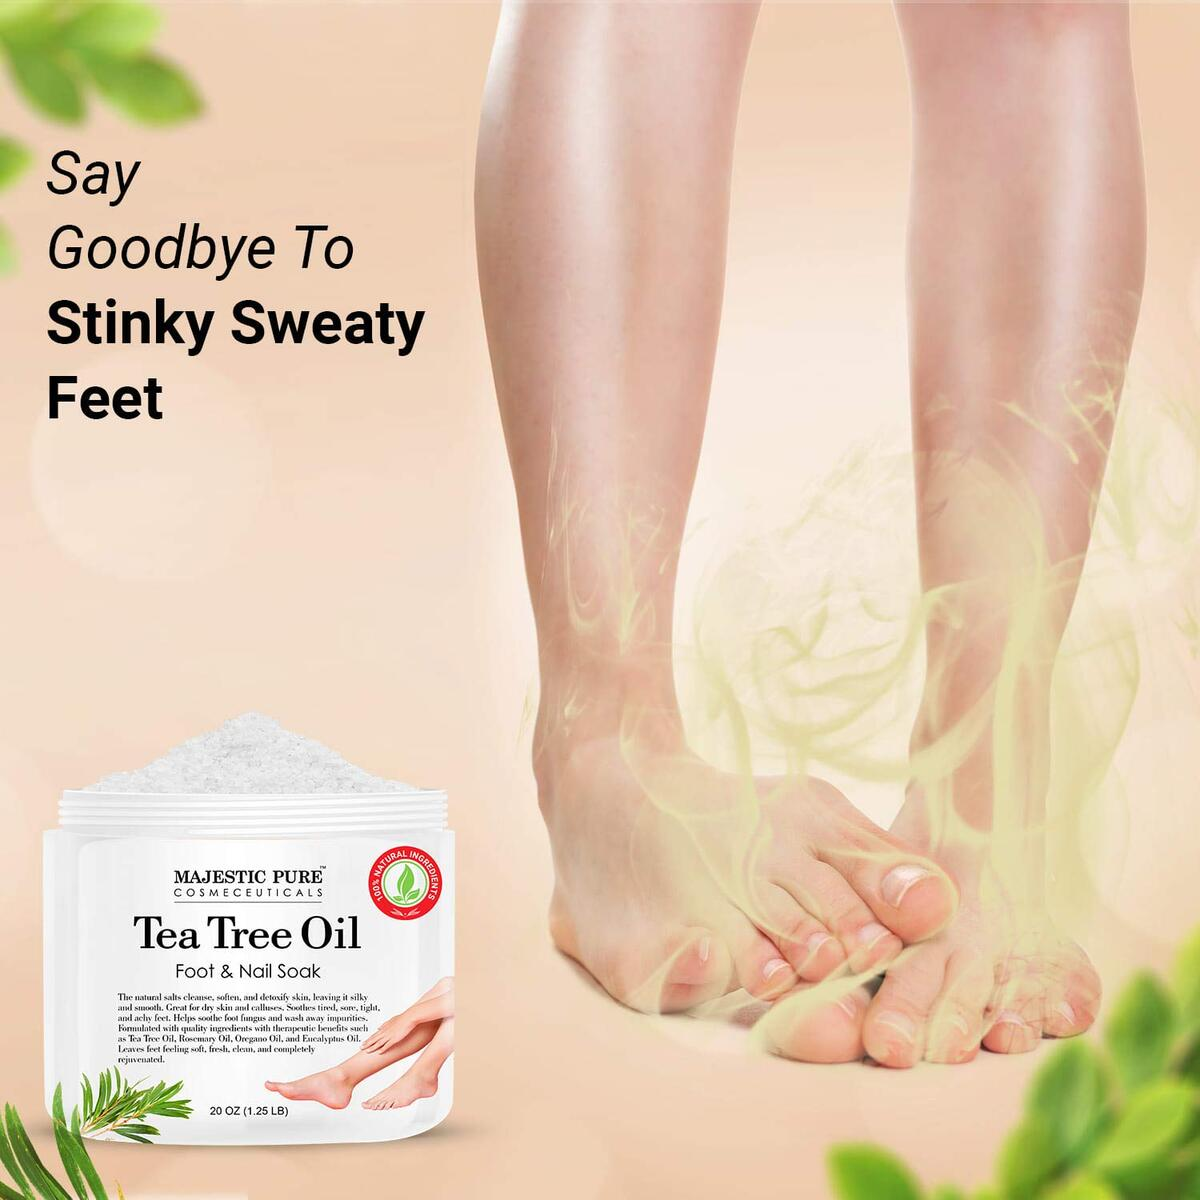 Tea Tree Foot Soak for Dry Cracked Feet - 100% Natural with Epsom Salt and Top Six Essential Oils - Foot & Nail Soak for Tired, Sore and Achy Feet - 20 oz